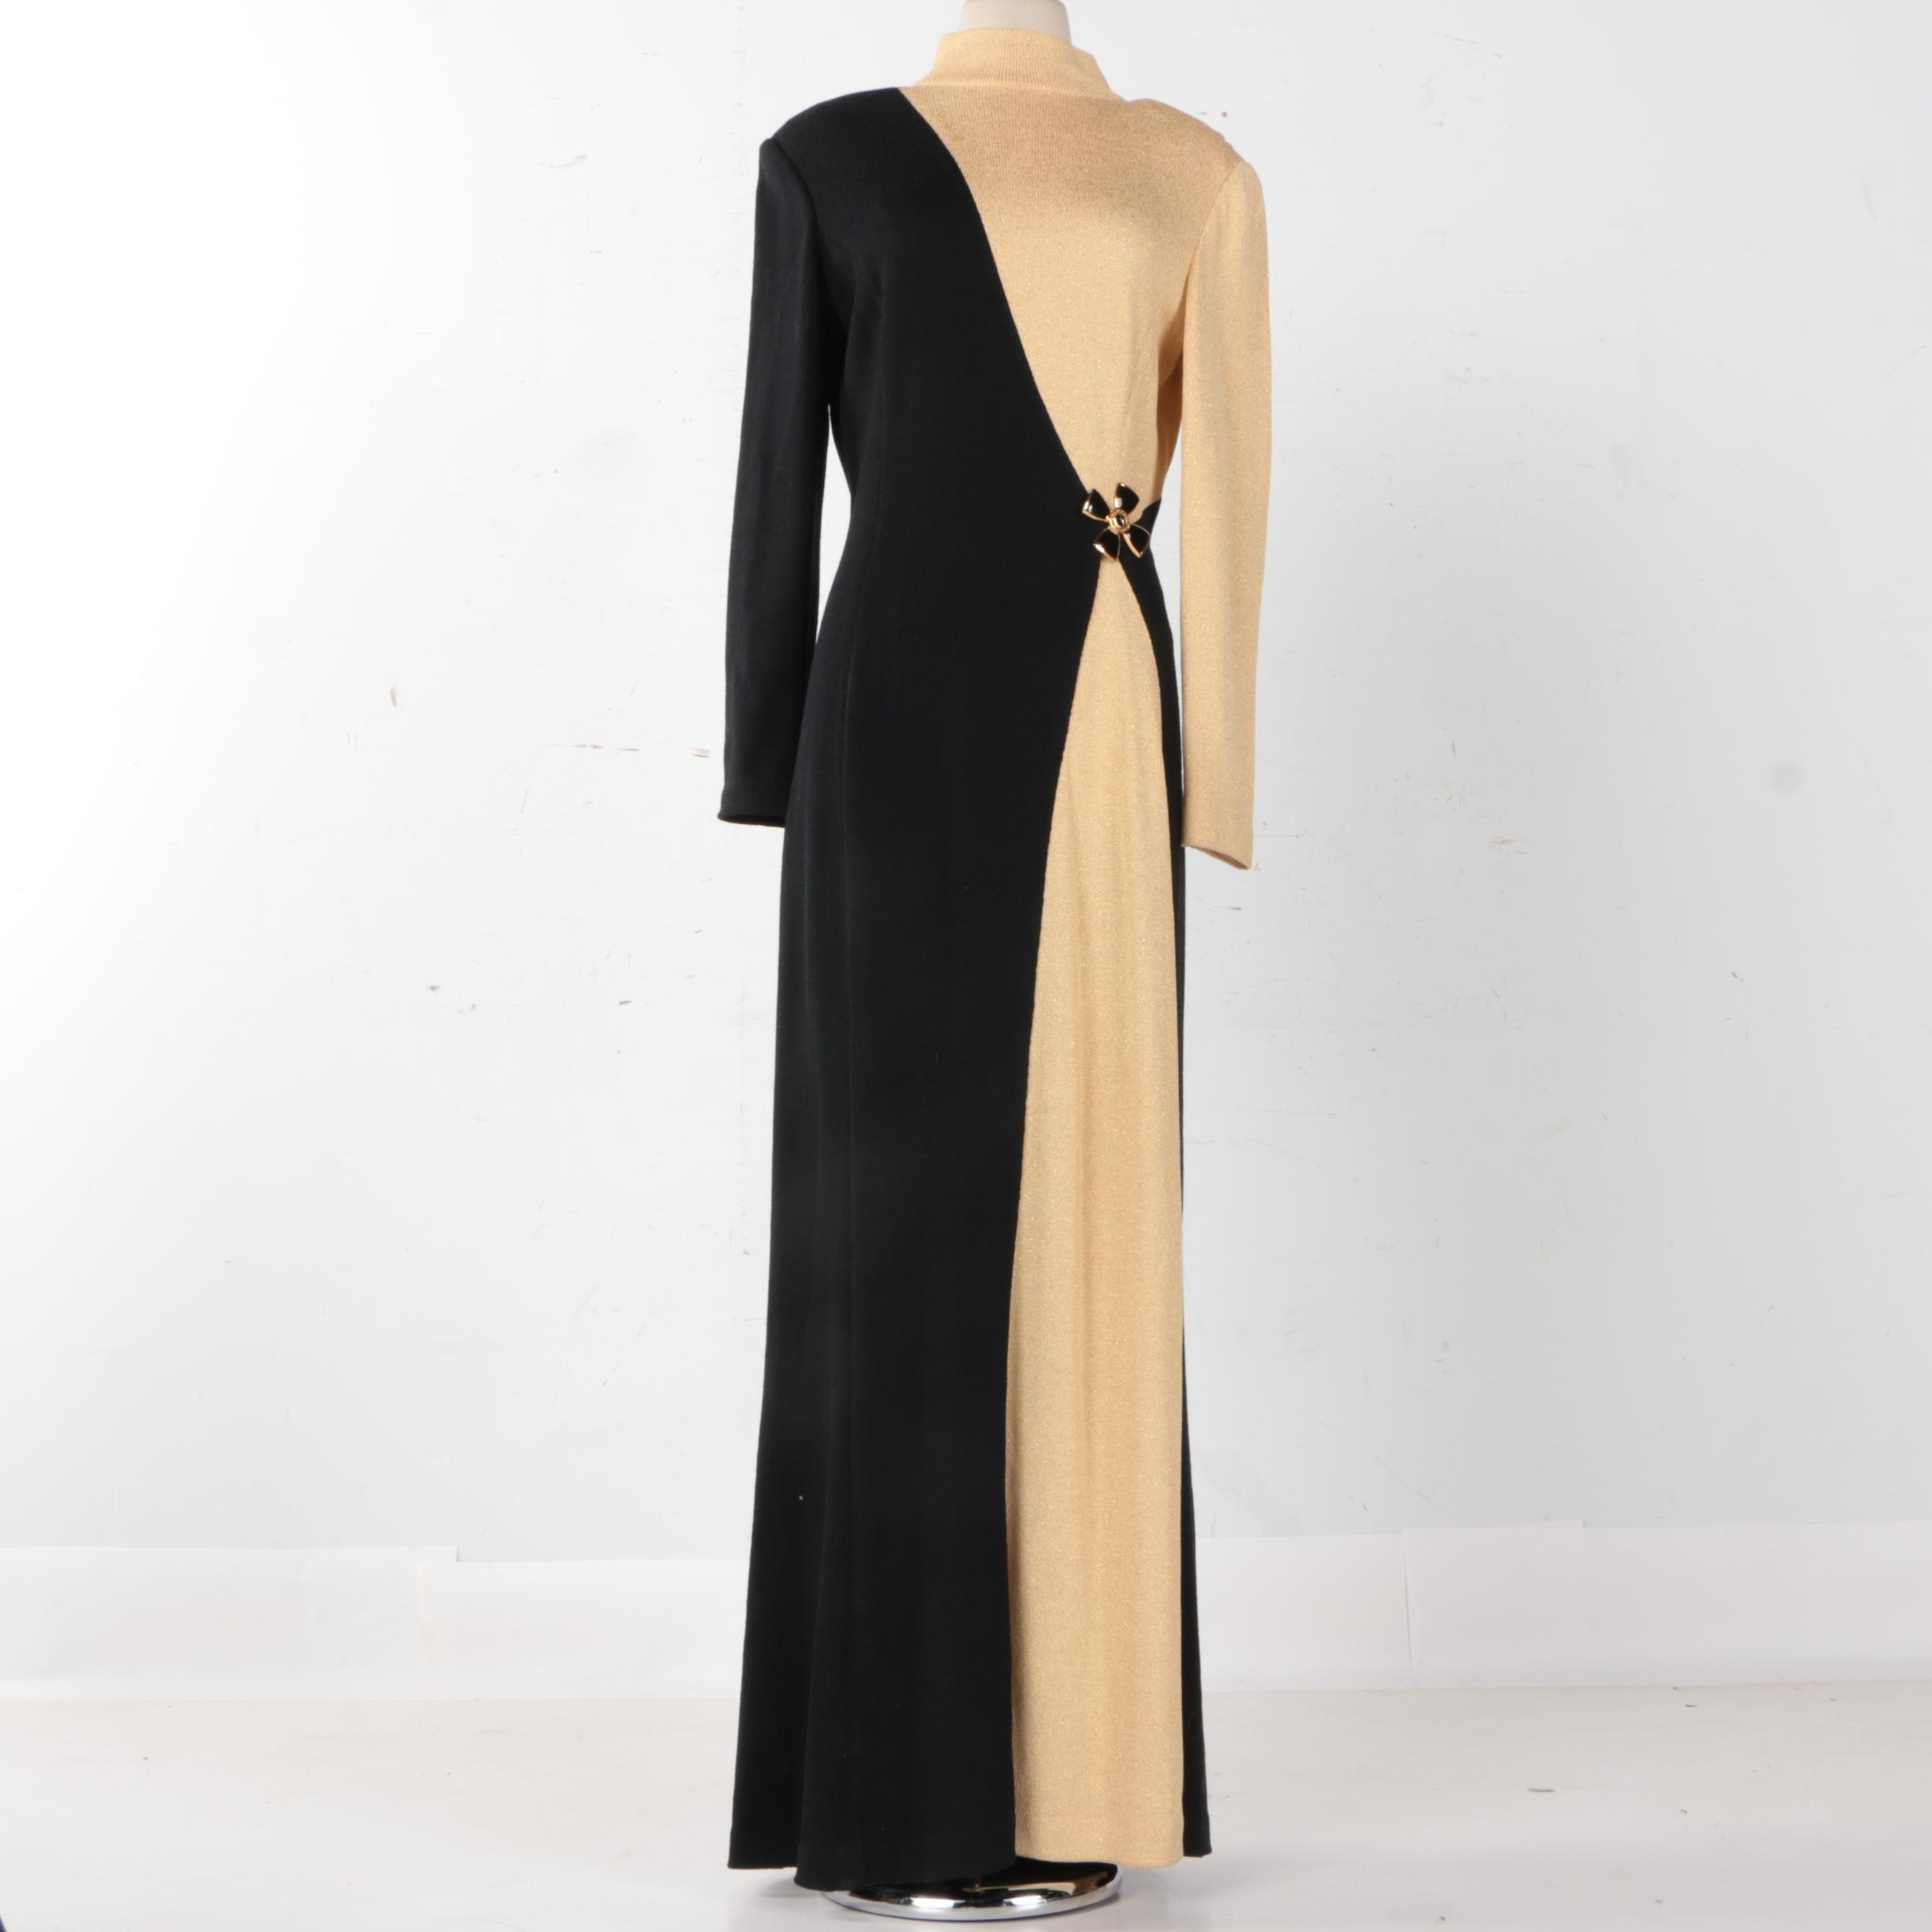 St. John Knit Evening Black and Tan Full Length Knit Dress